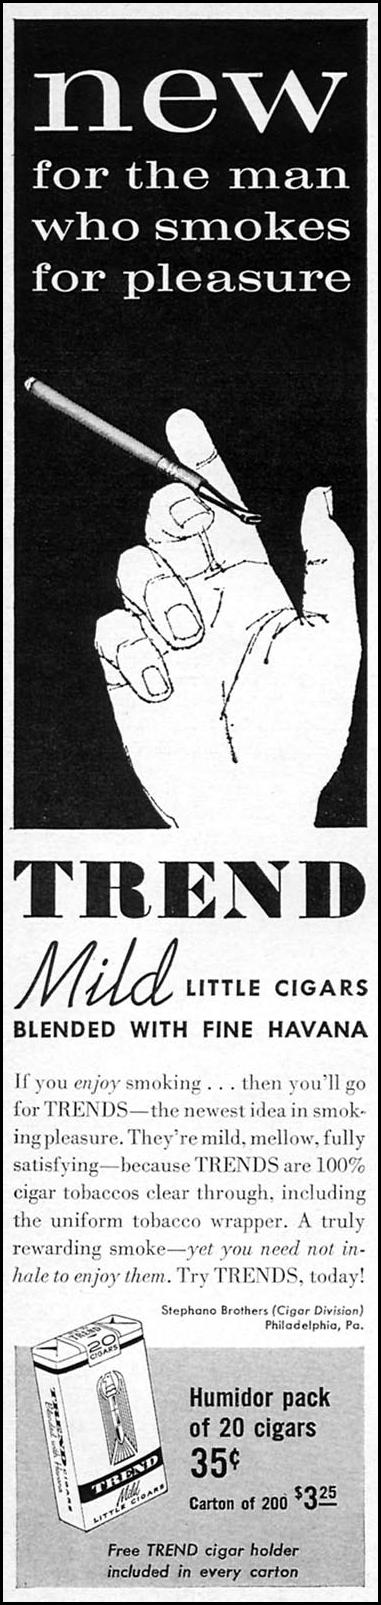 TREND MILD LITTLE CIGARS SPORTS ILLUSTRATED 05/25/1959 p. 4